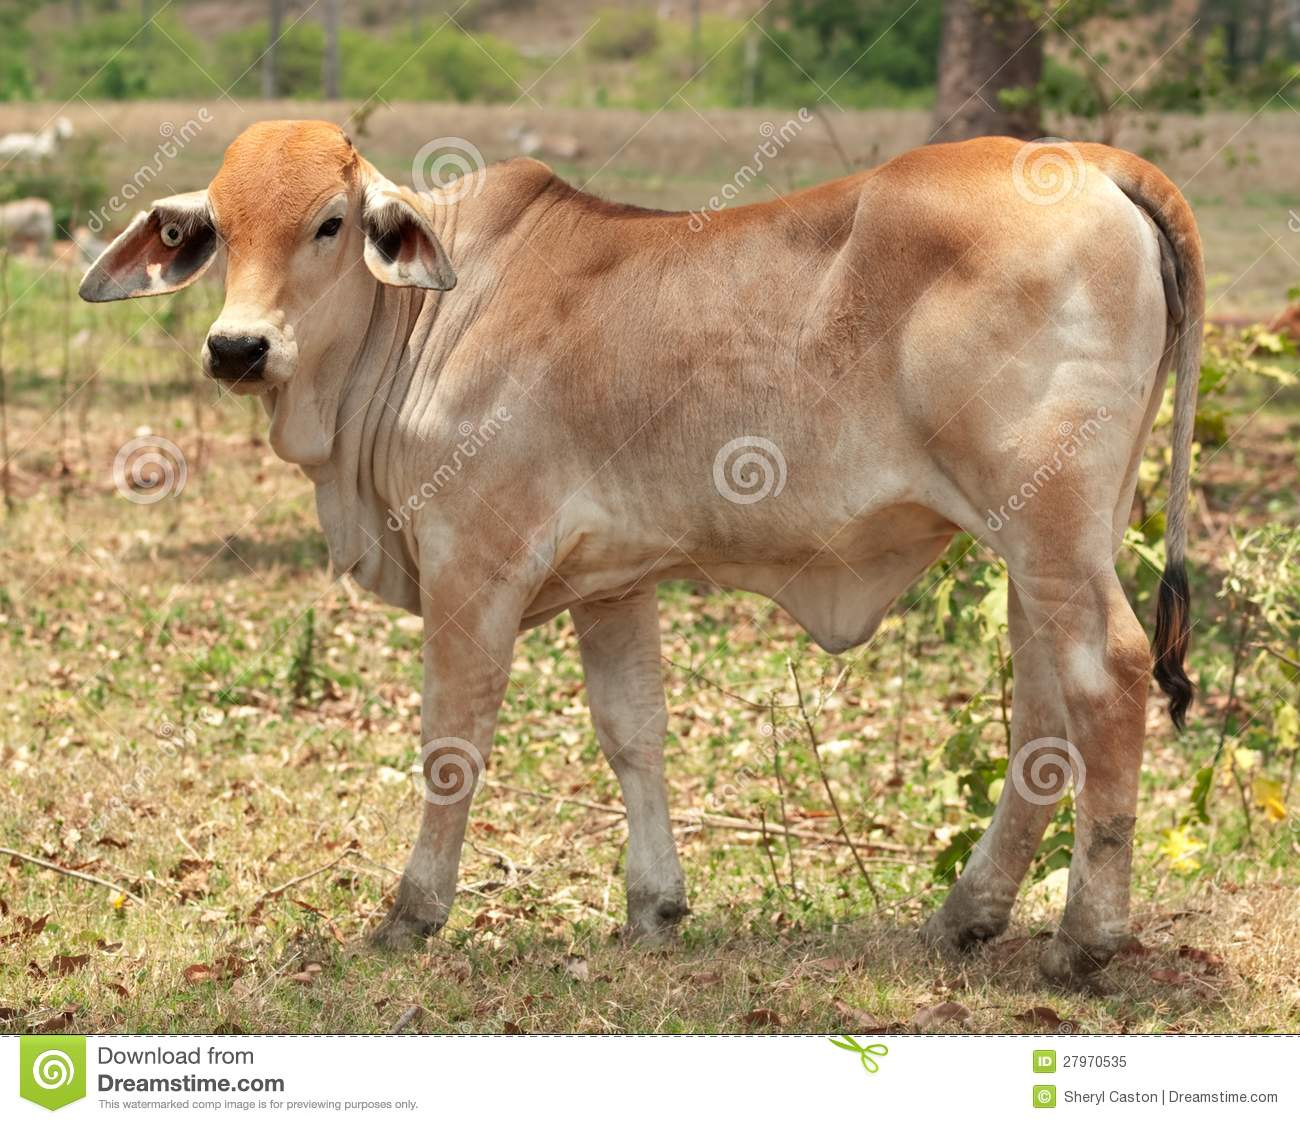 Breeding cattle as an investment